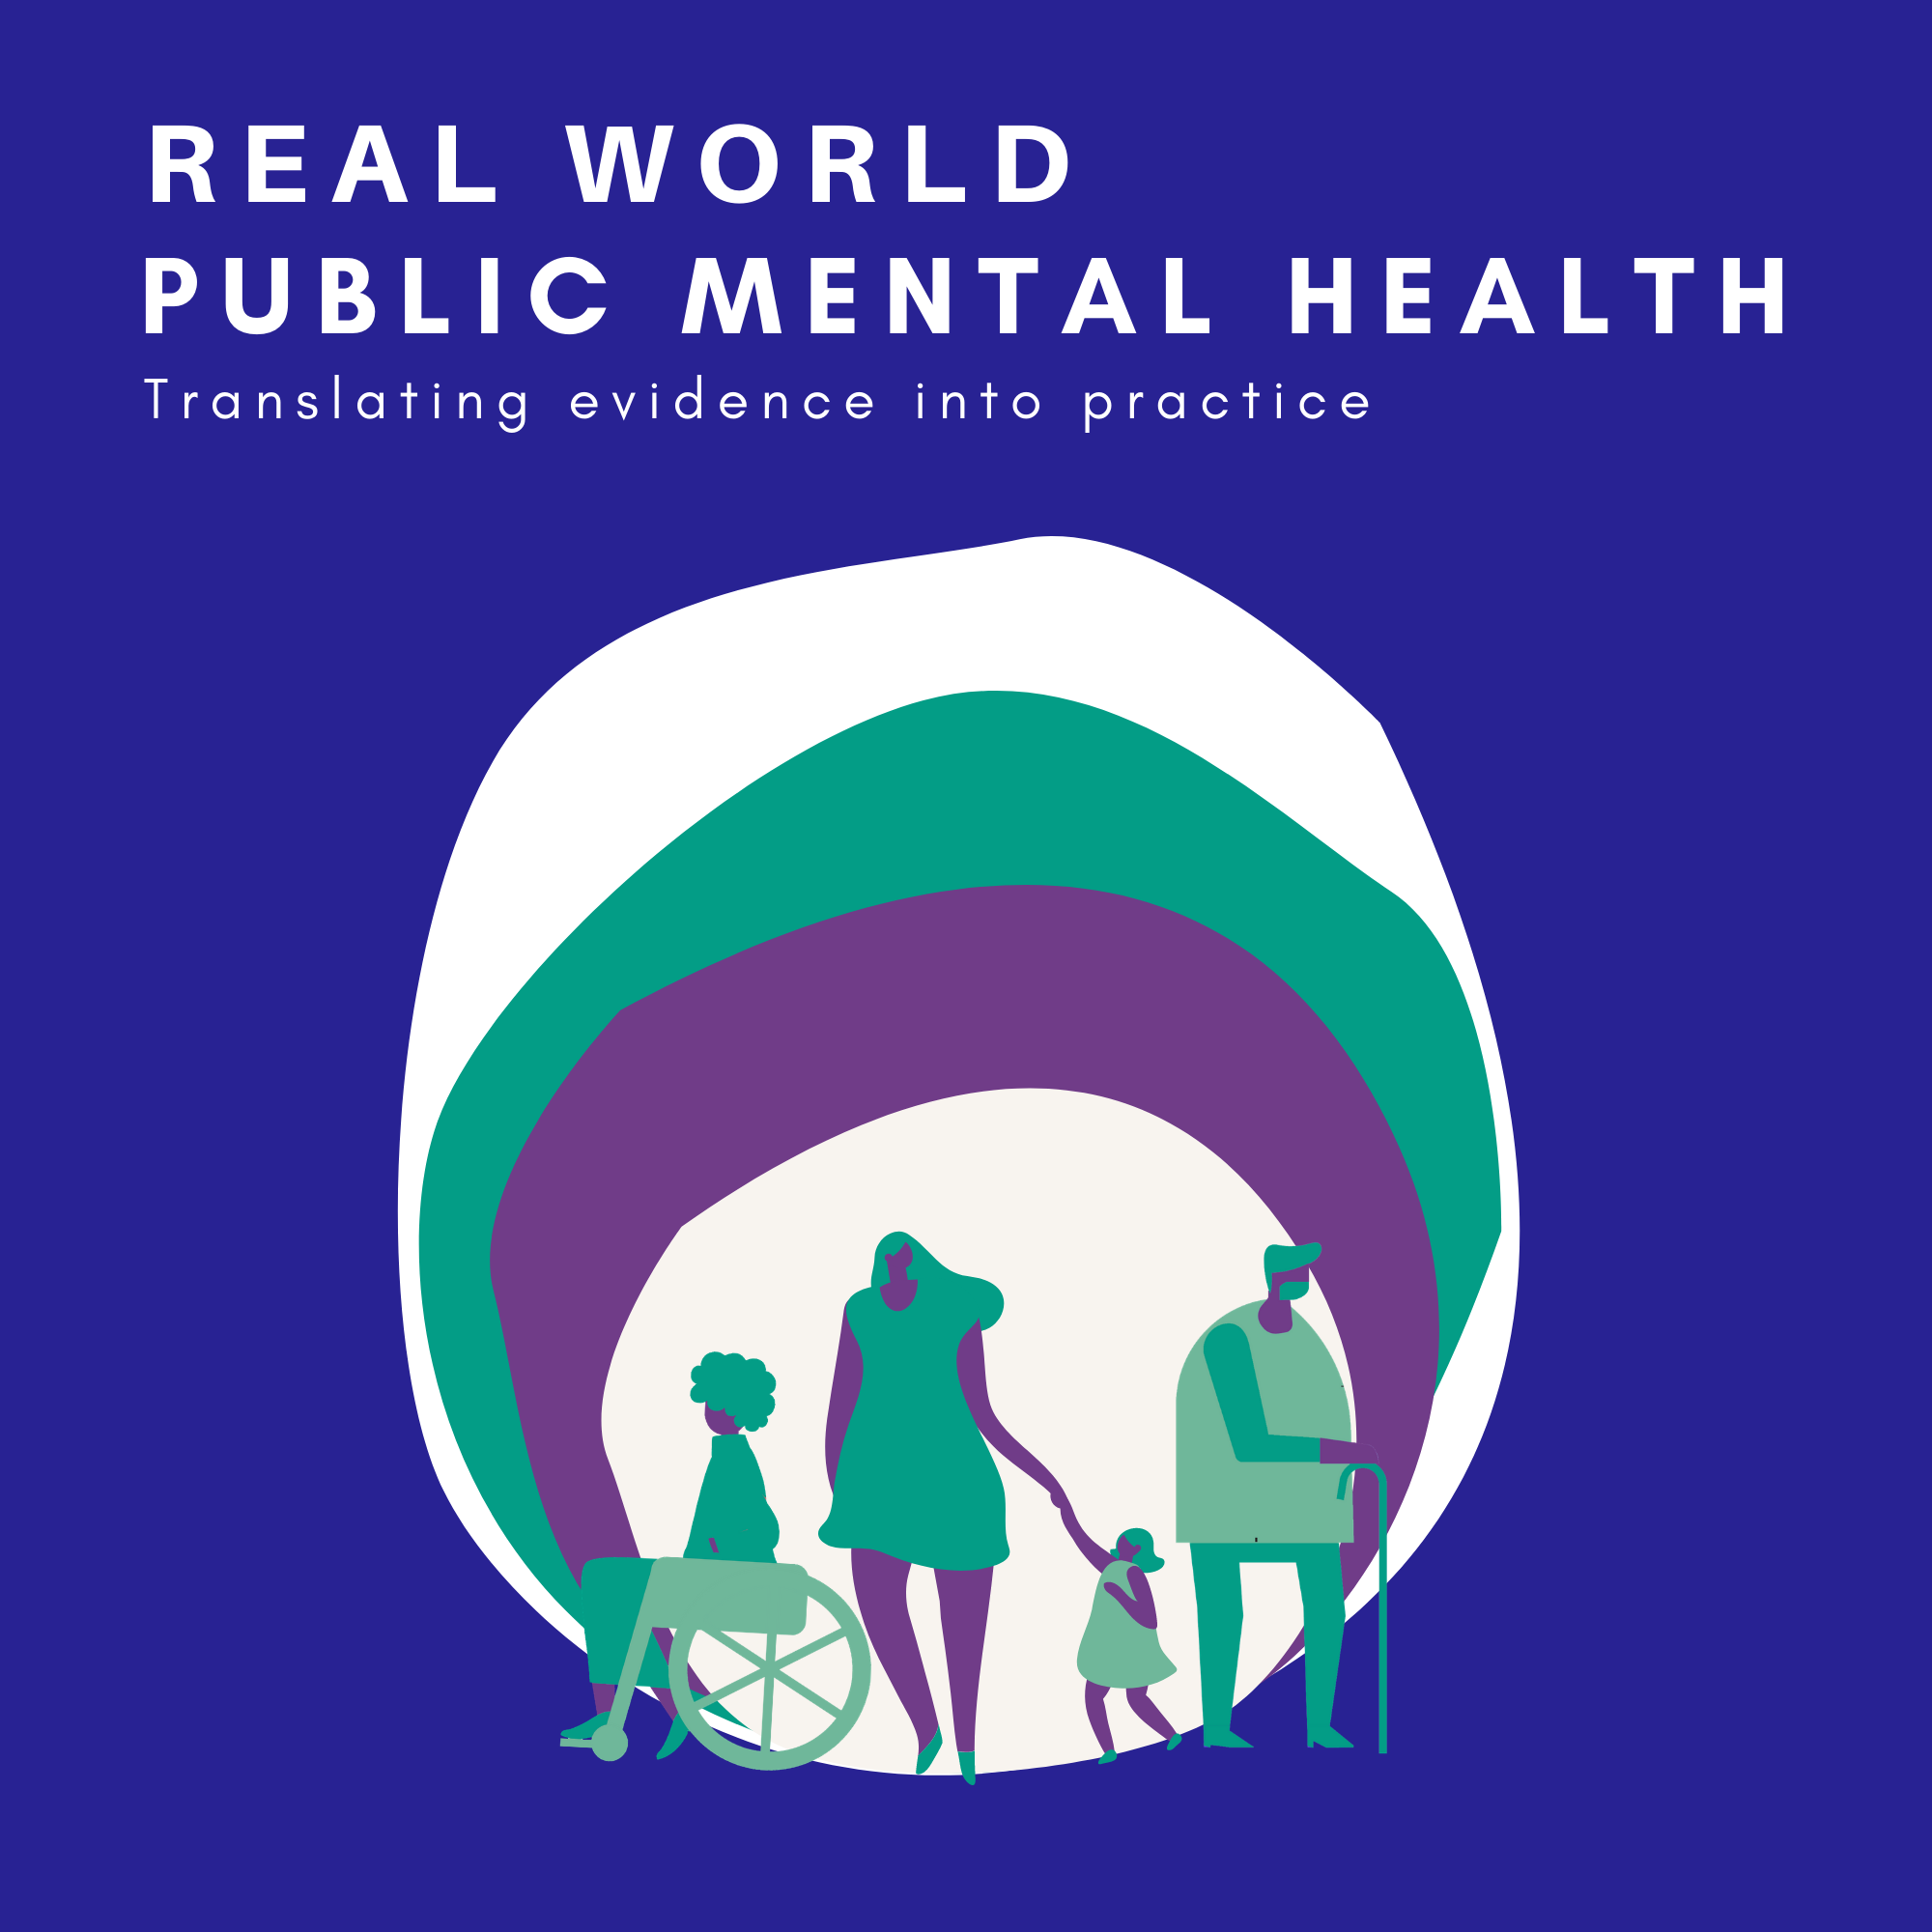 Real World Public Mental Health